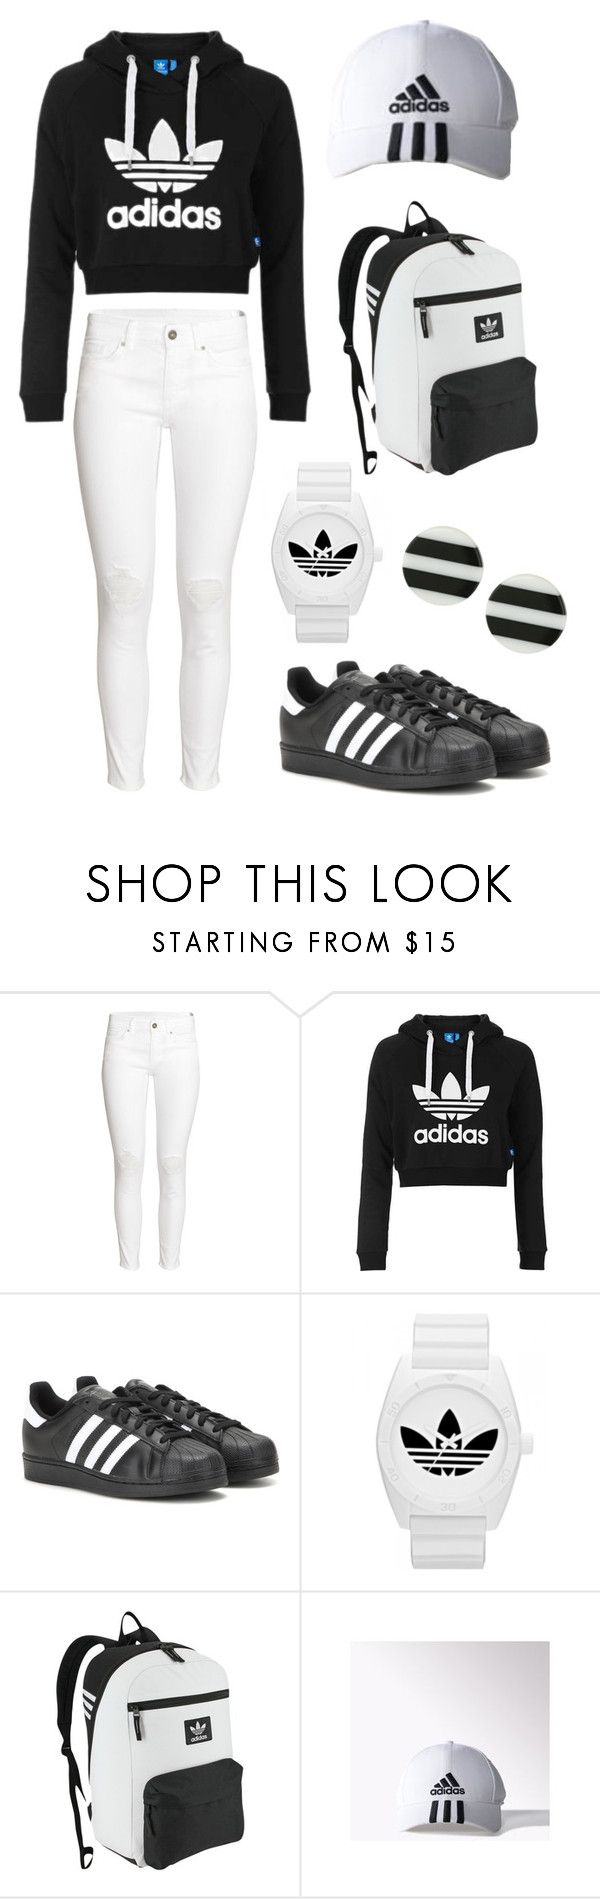 """Adidas Obsession"" by alphashe on Polyvore featuring H&M, Topshop, adidas, adidas Originals, Kate Spade, white, black, stripes and sporty"